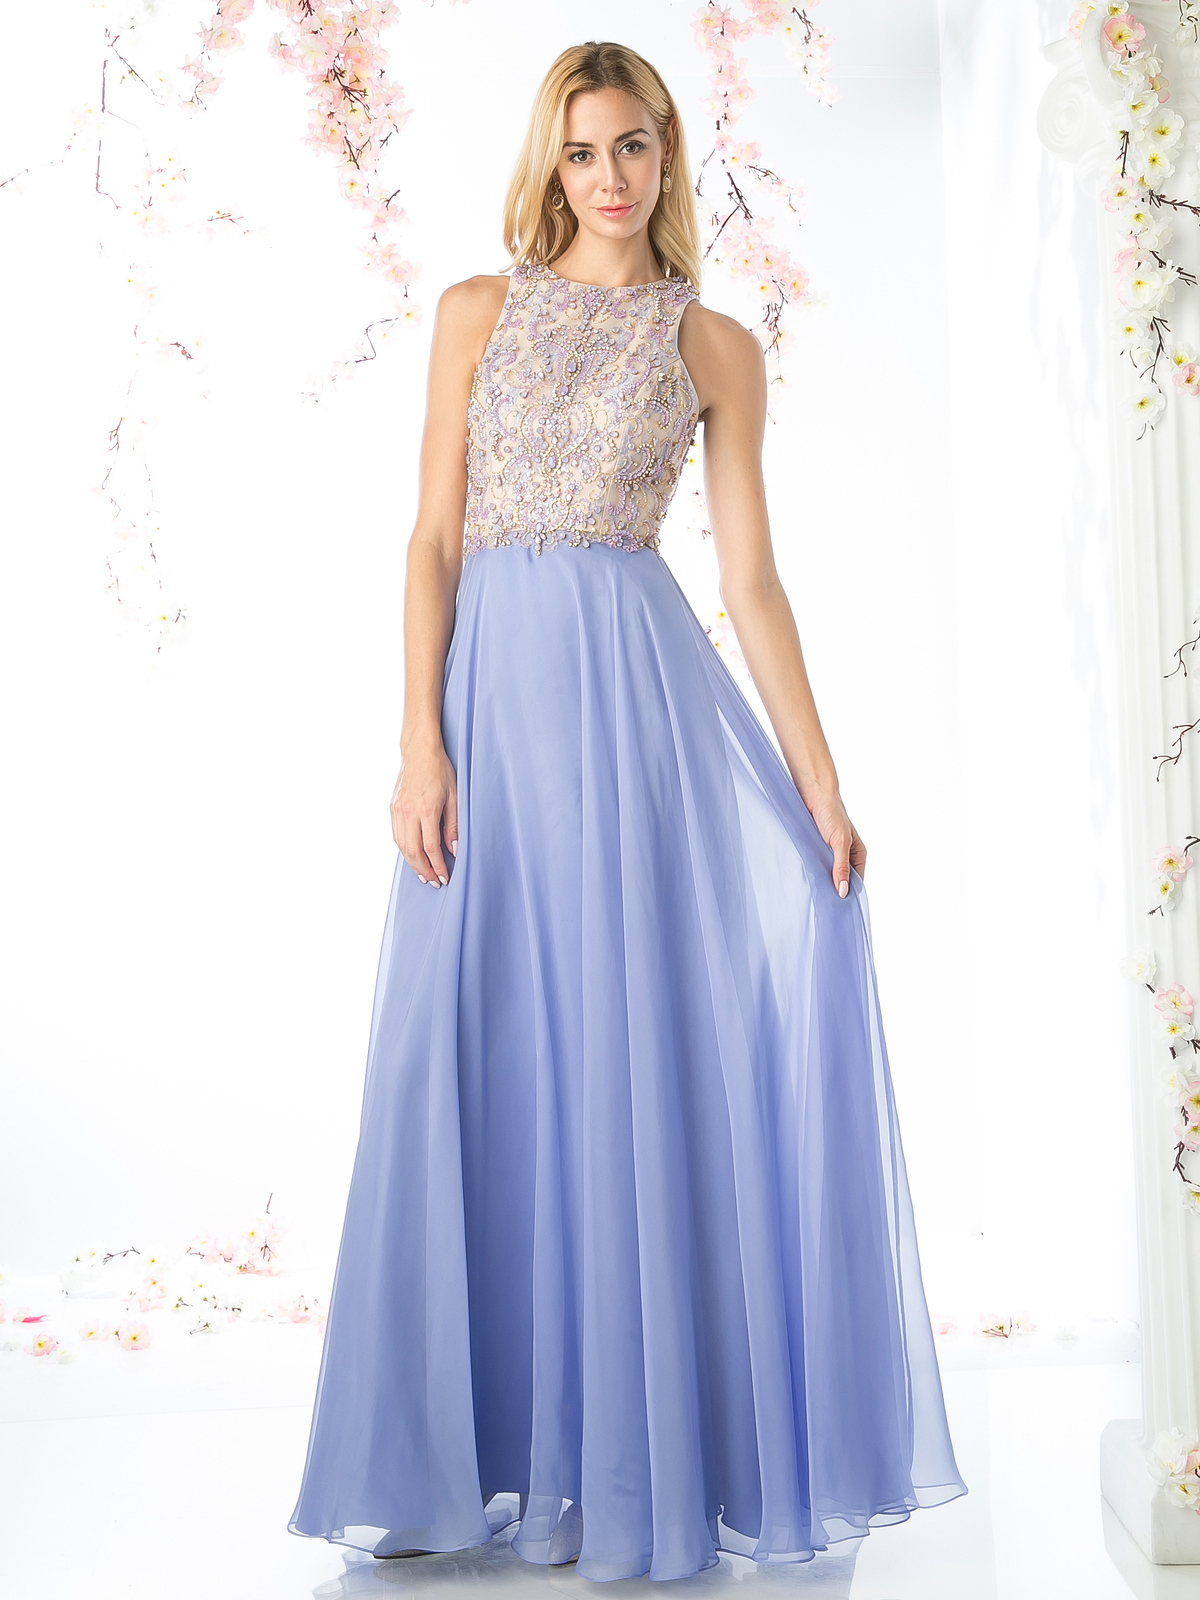 High Neck Sleeveless Beaded Bodice Prom Dress | Sung Boutique L.A.